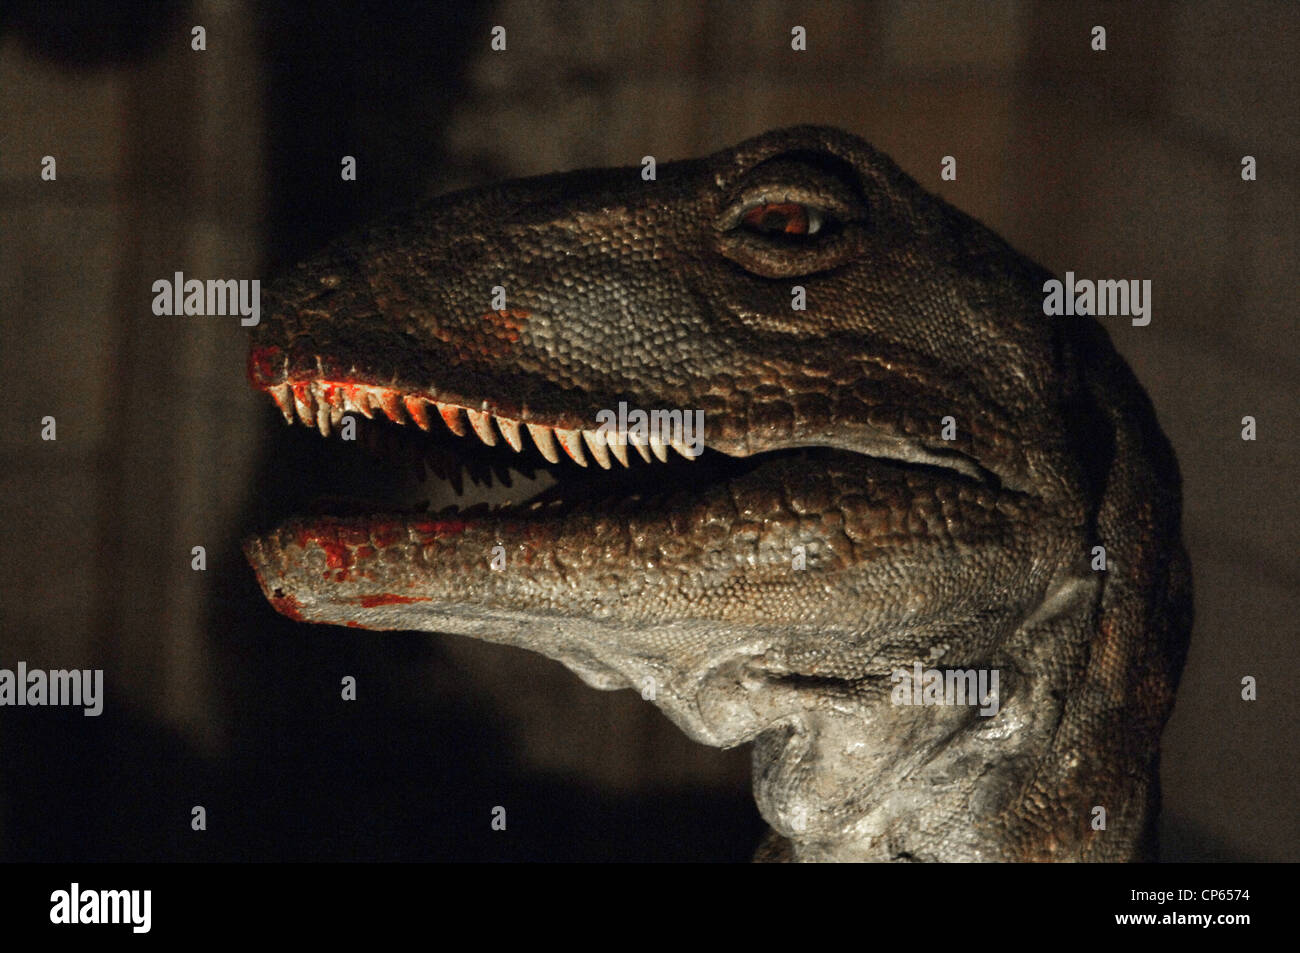 Reproduction of a Deinonychus (Deinonychus antirrhopus). Lower Cretaceous. 119-97 million years ago. - Stock Image